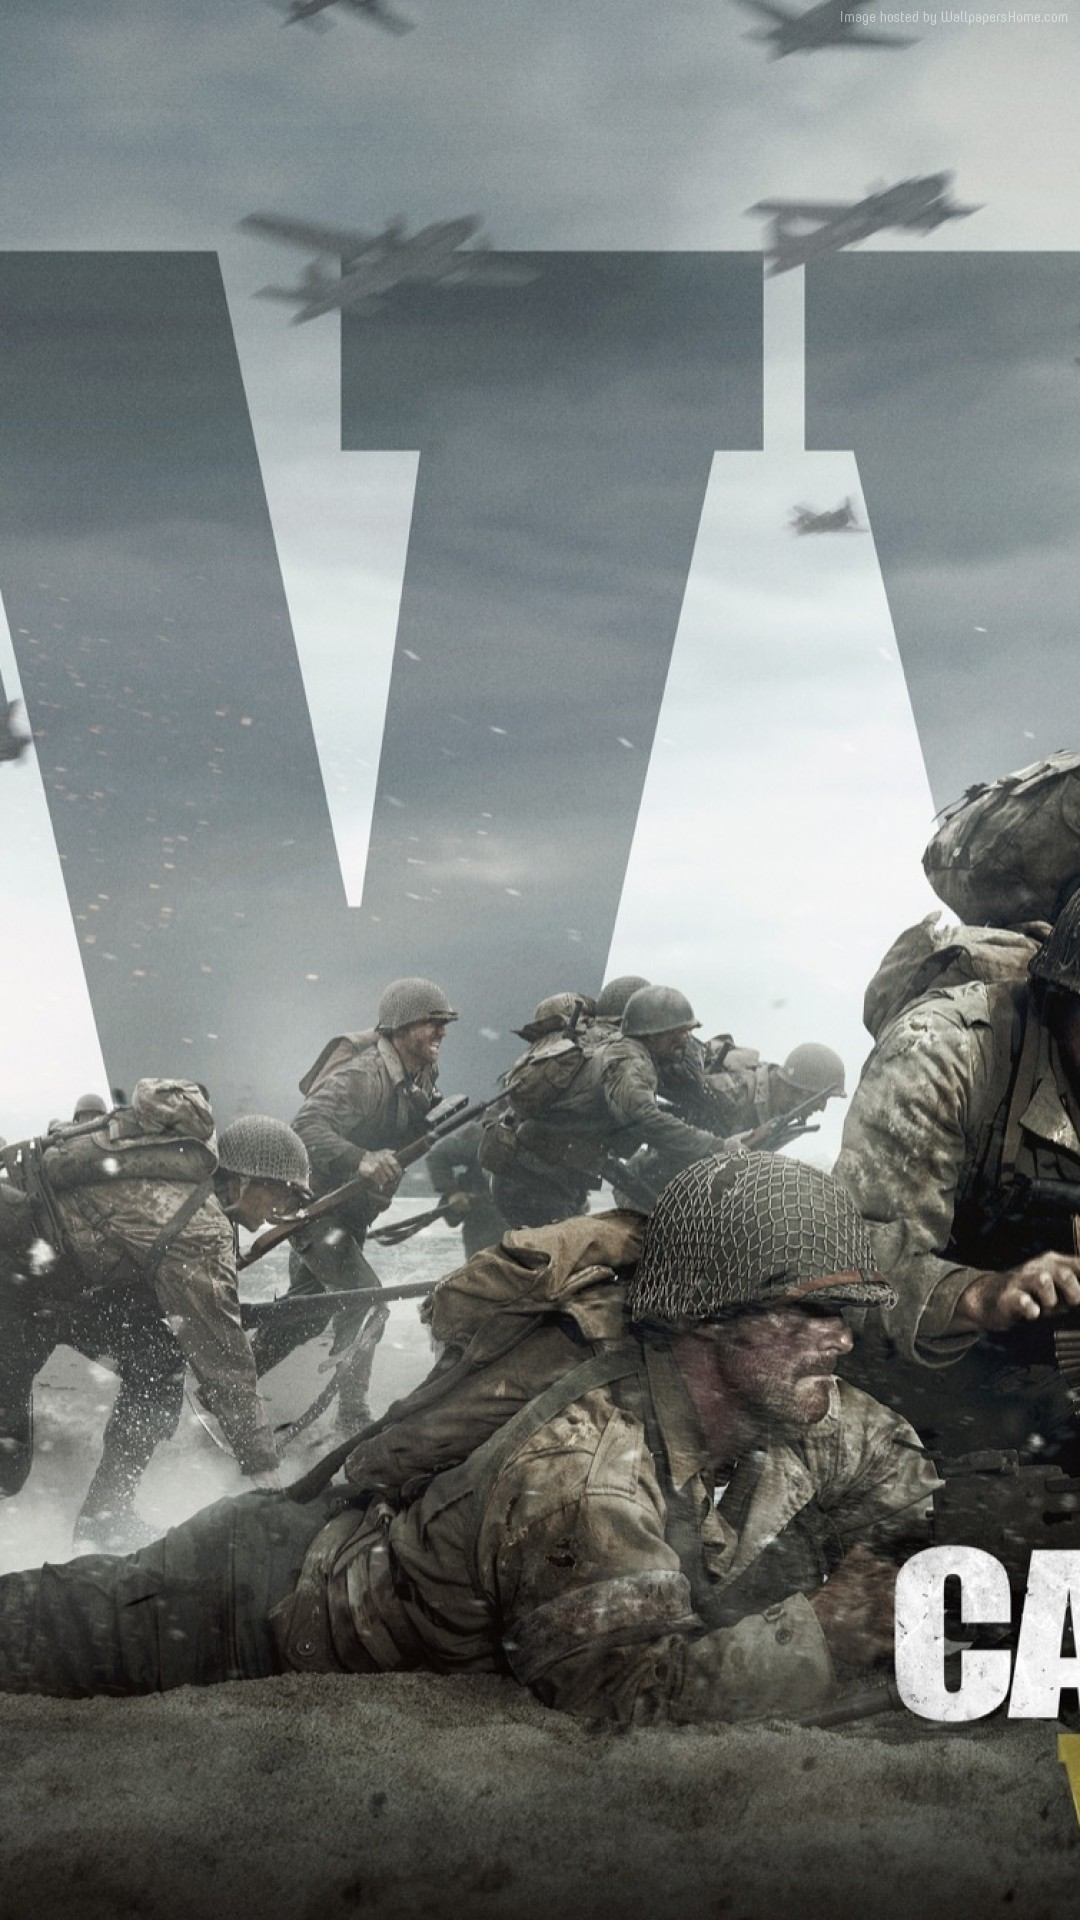 Ww2 wallpaper images 71 images - Is cod ww2 4k ...